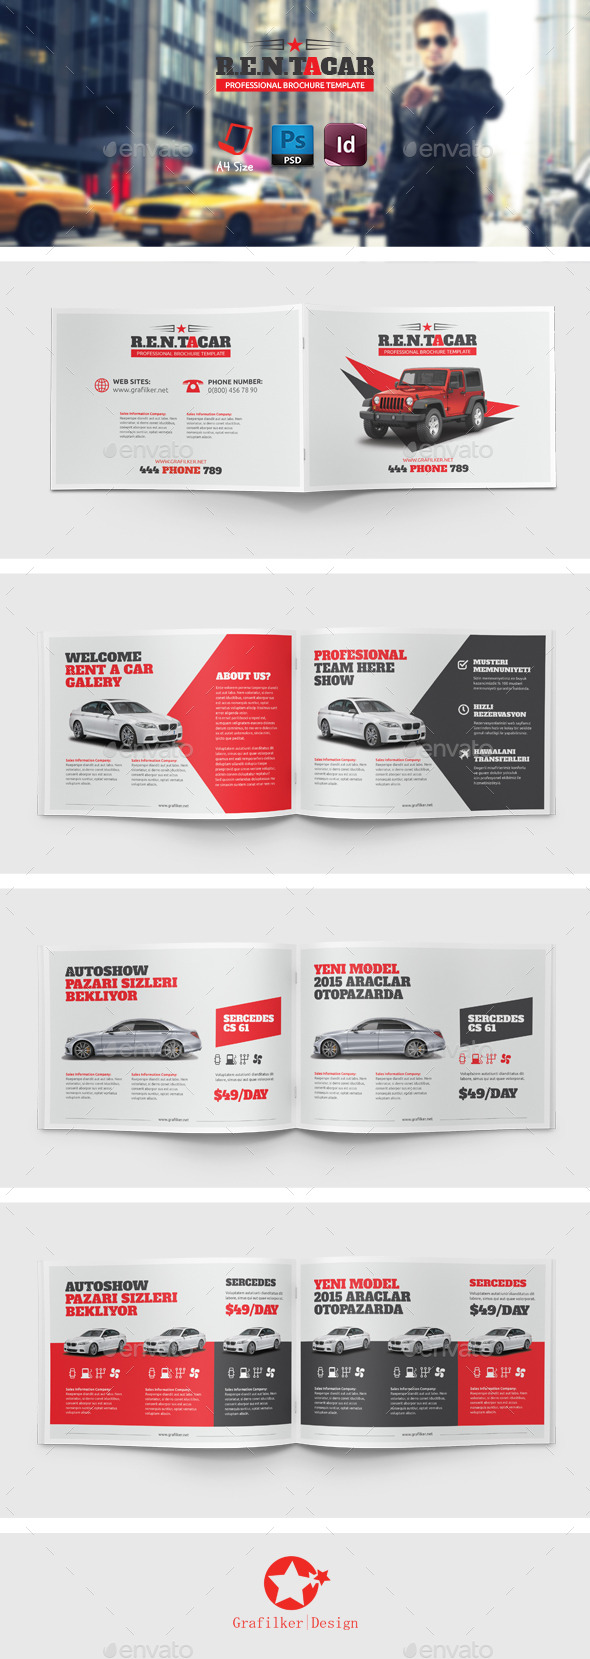 Rent a car brochure templates by grafilker graphicriver for Car brochure template